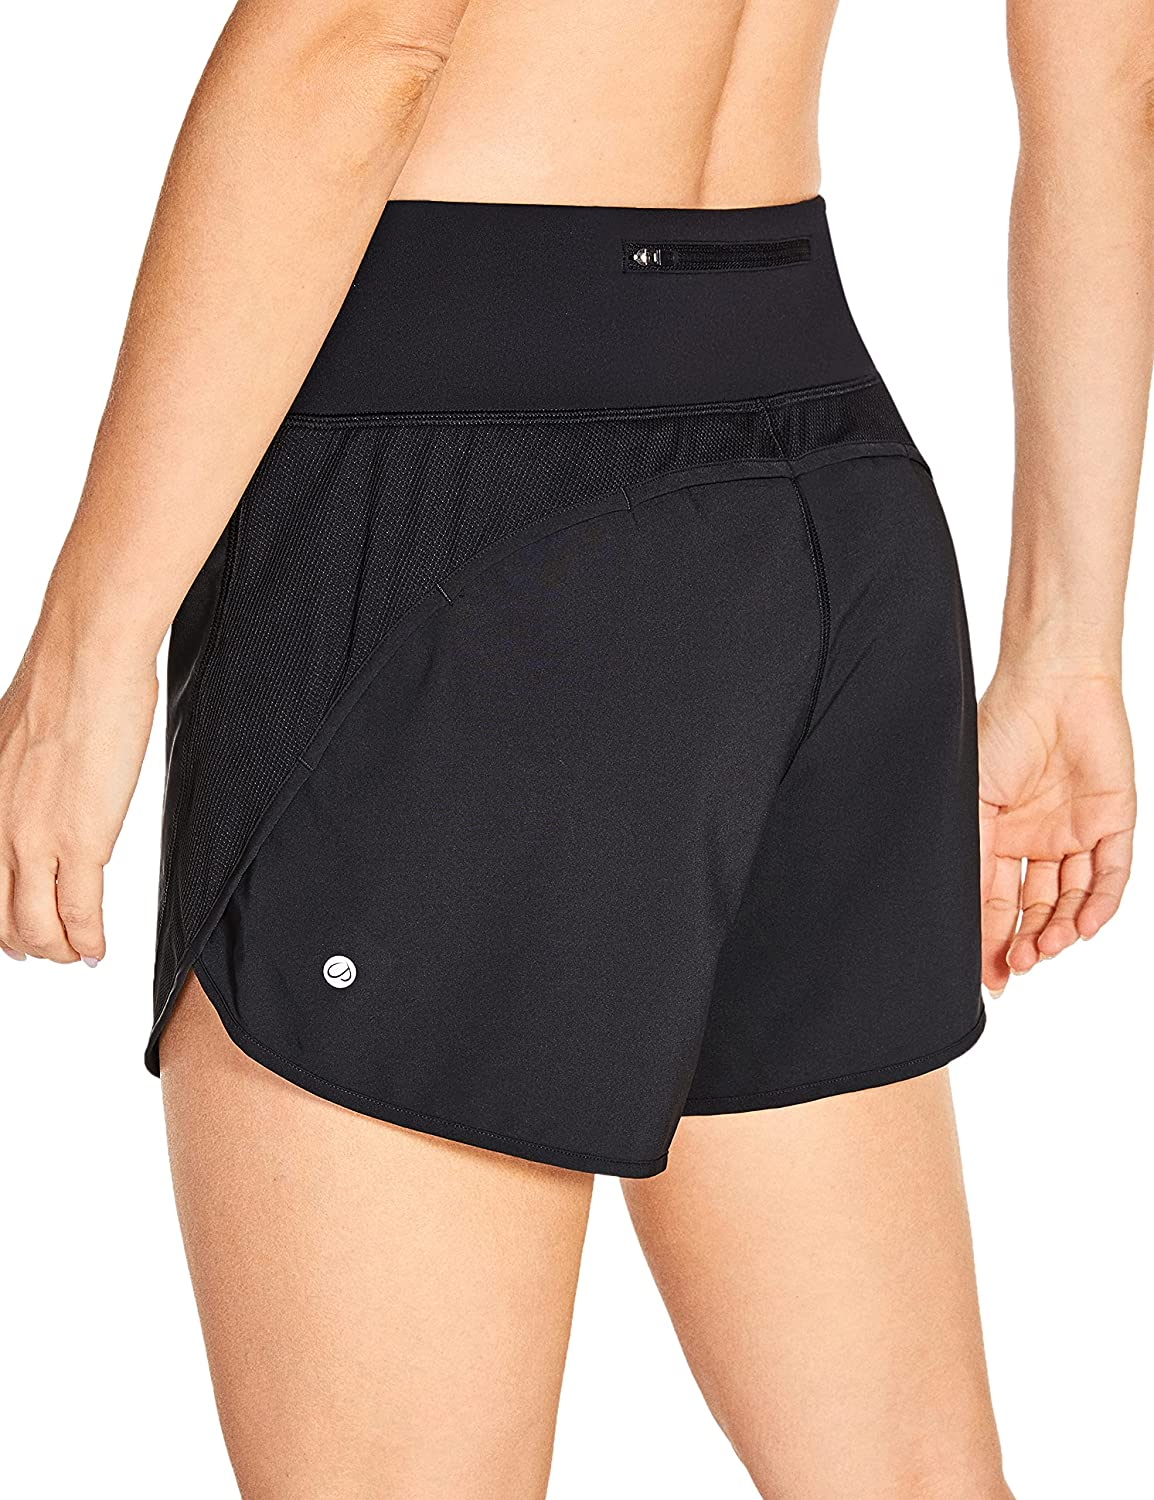 CRZ YOGA Oklahoma City Mall Women's Max 40% OFF Lightweight Quick-Dry Sports W Athletic Running